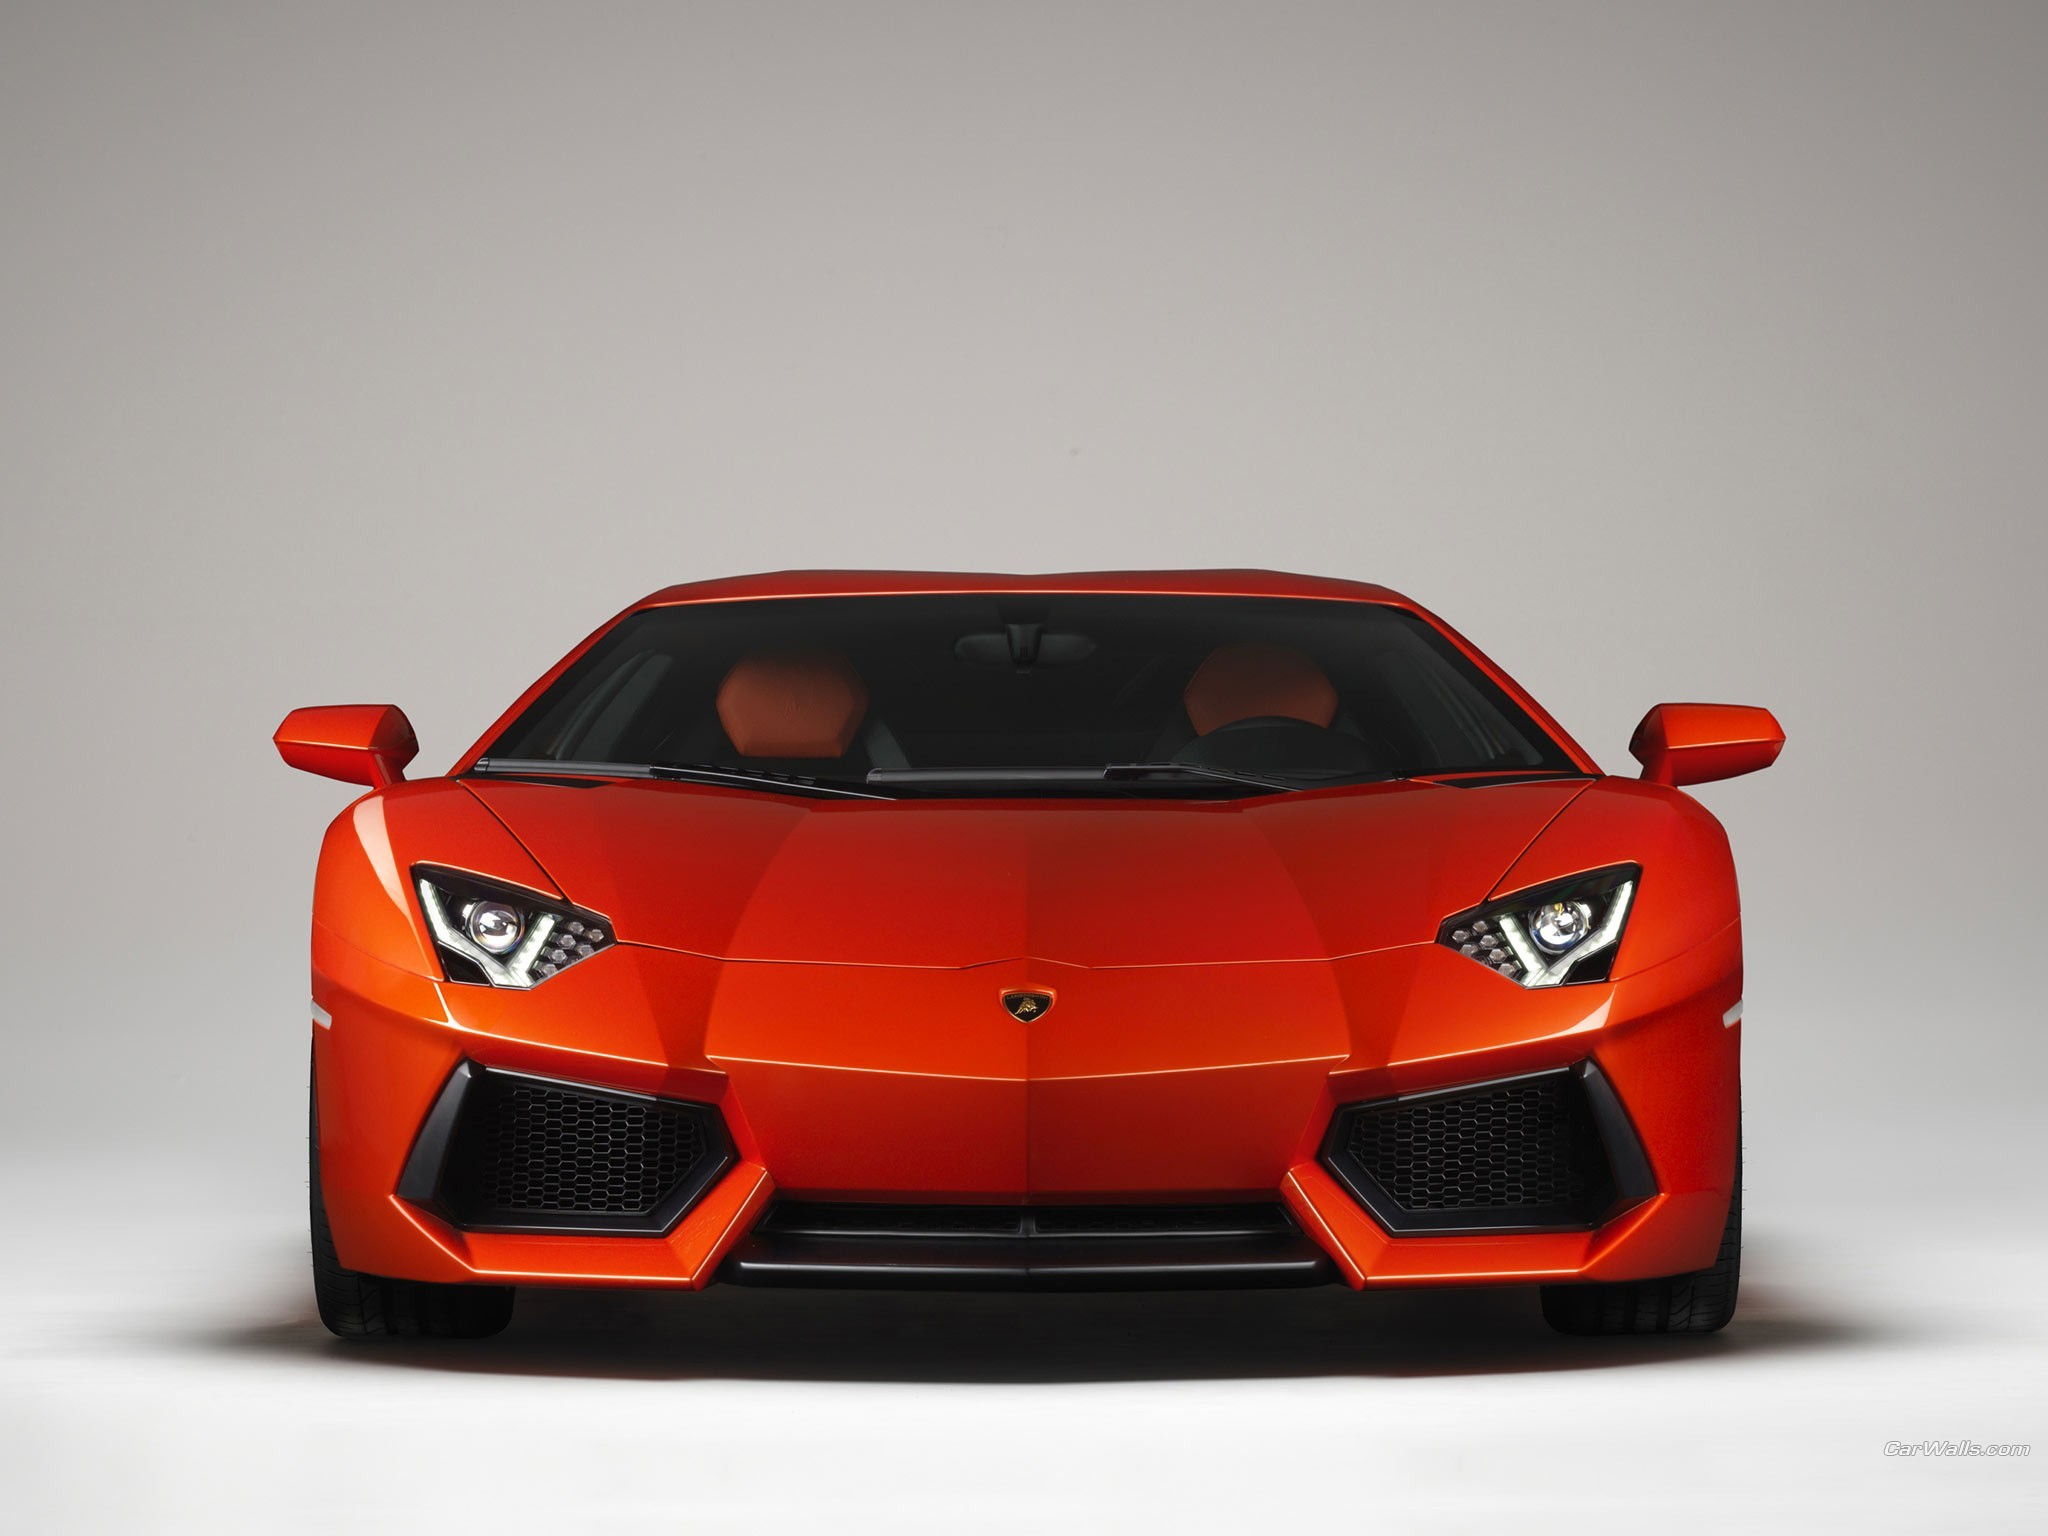 red lamborghini aventador front view wallpaper 15882 pc en. Black Bedroom Furniture Sets. Home Design Ideas